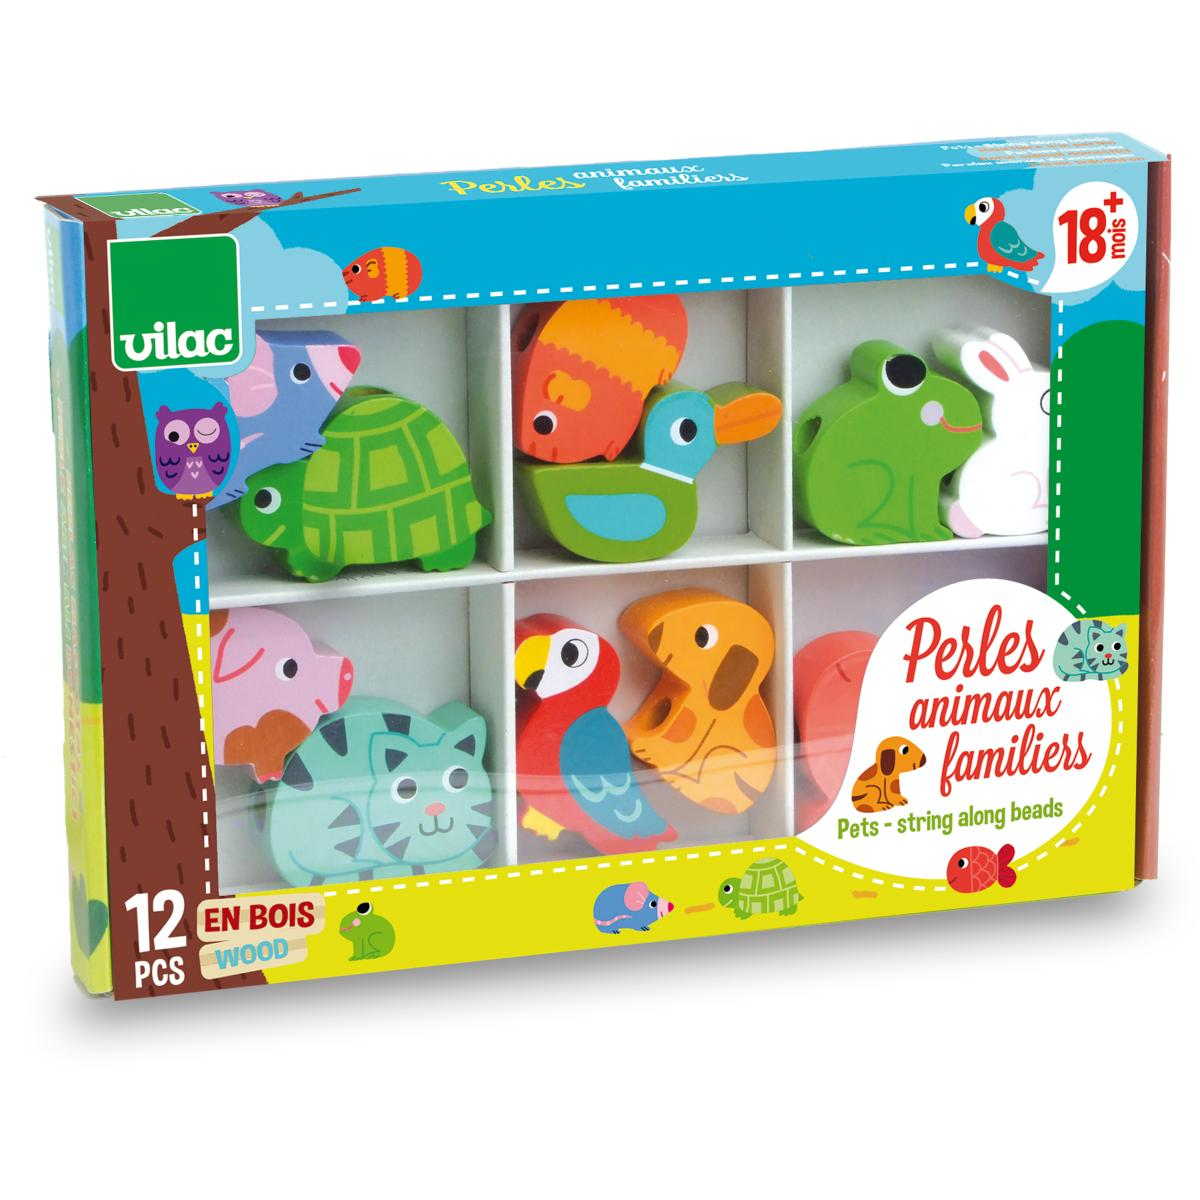 PERLES ANIMAUX FAMILIERS - VILAC